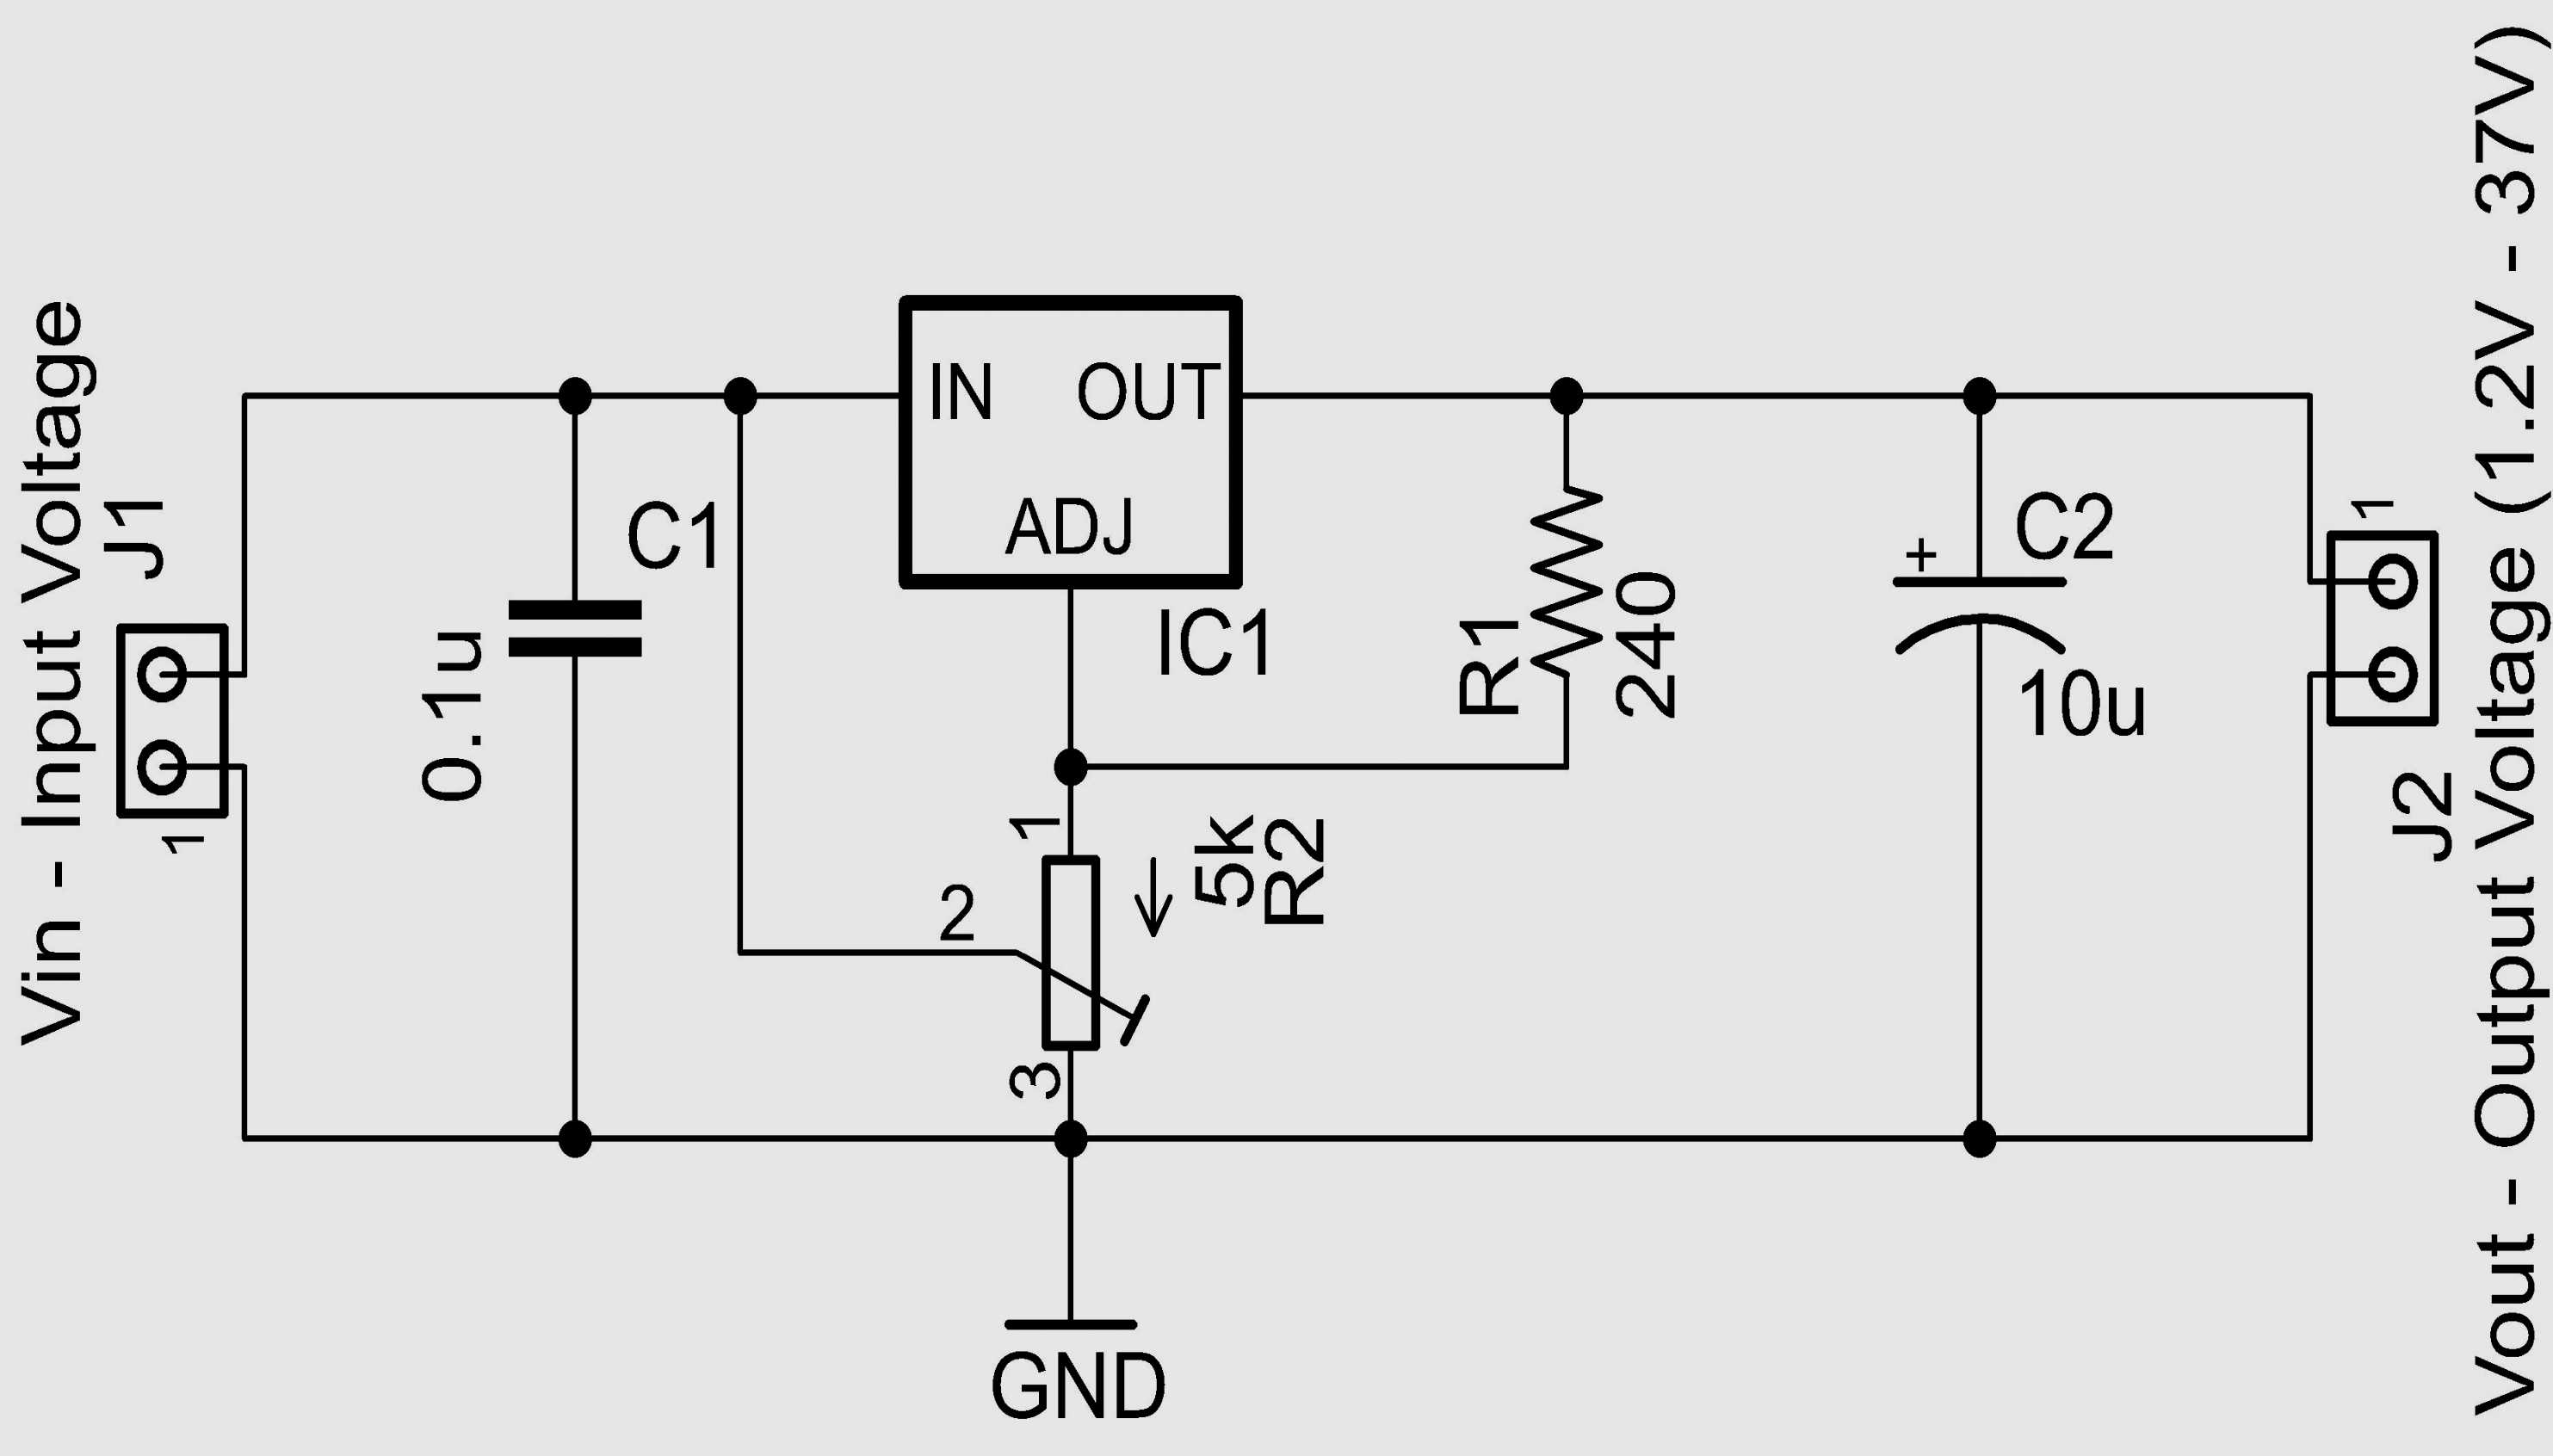 12 Volt Relay Wiring Diagram - Wiring Diagrams - 12 Volt Generator Voltage Regulator Wiring Diagram